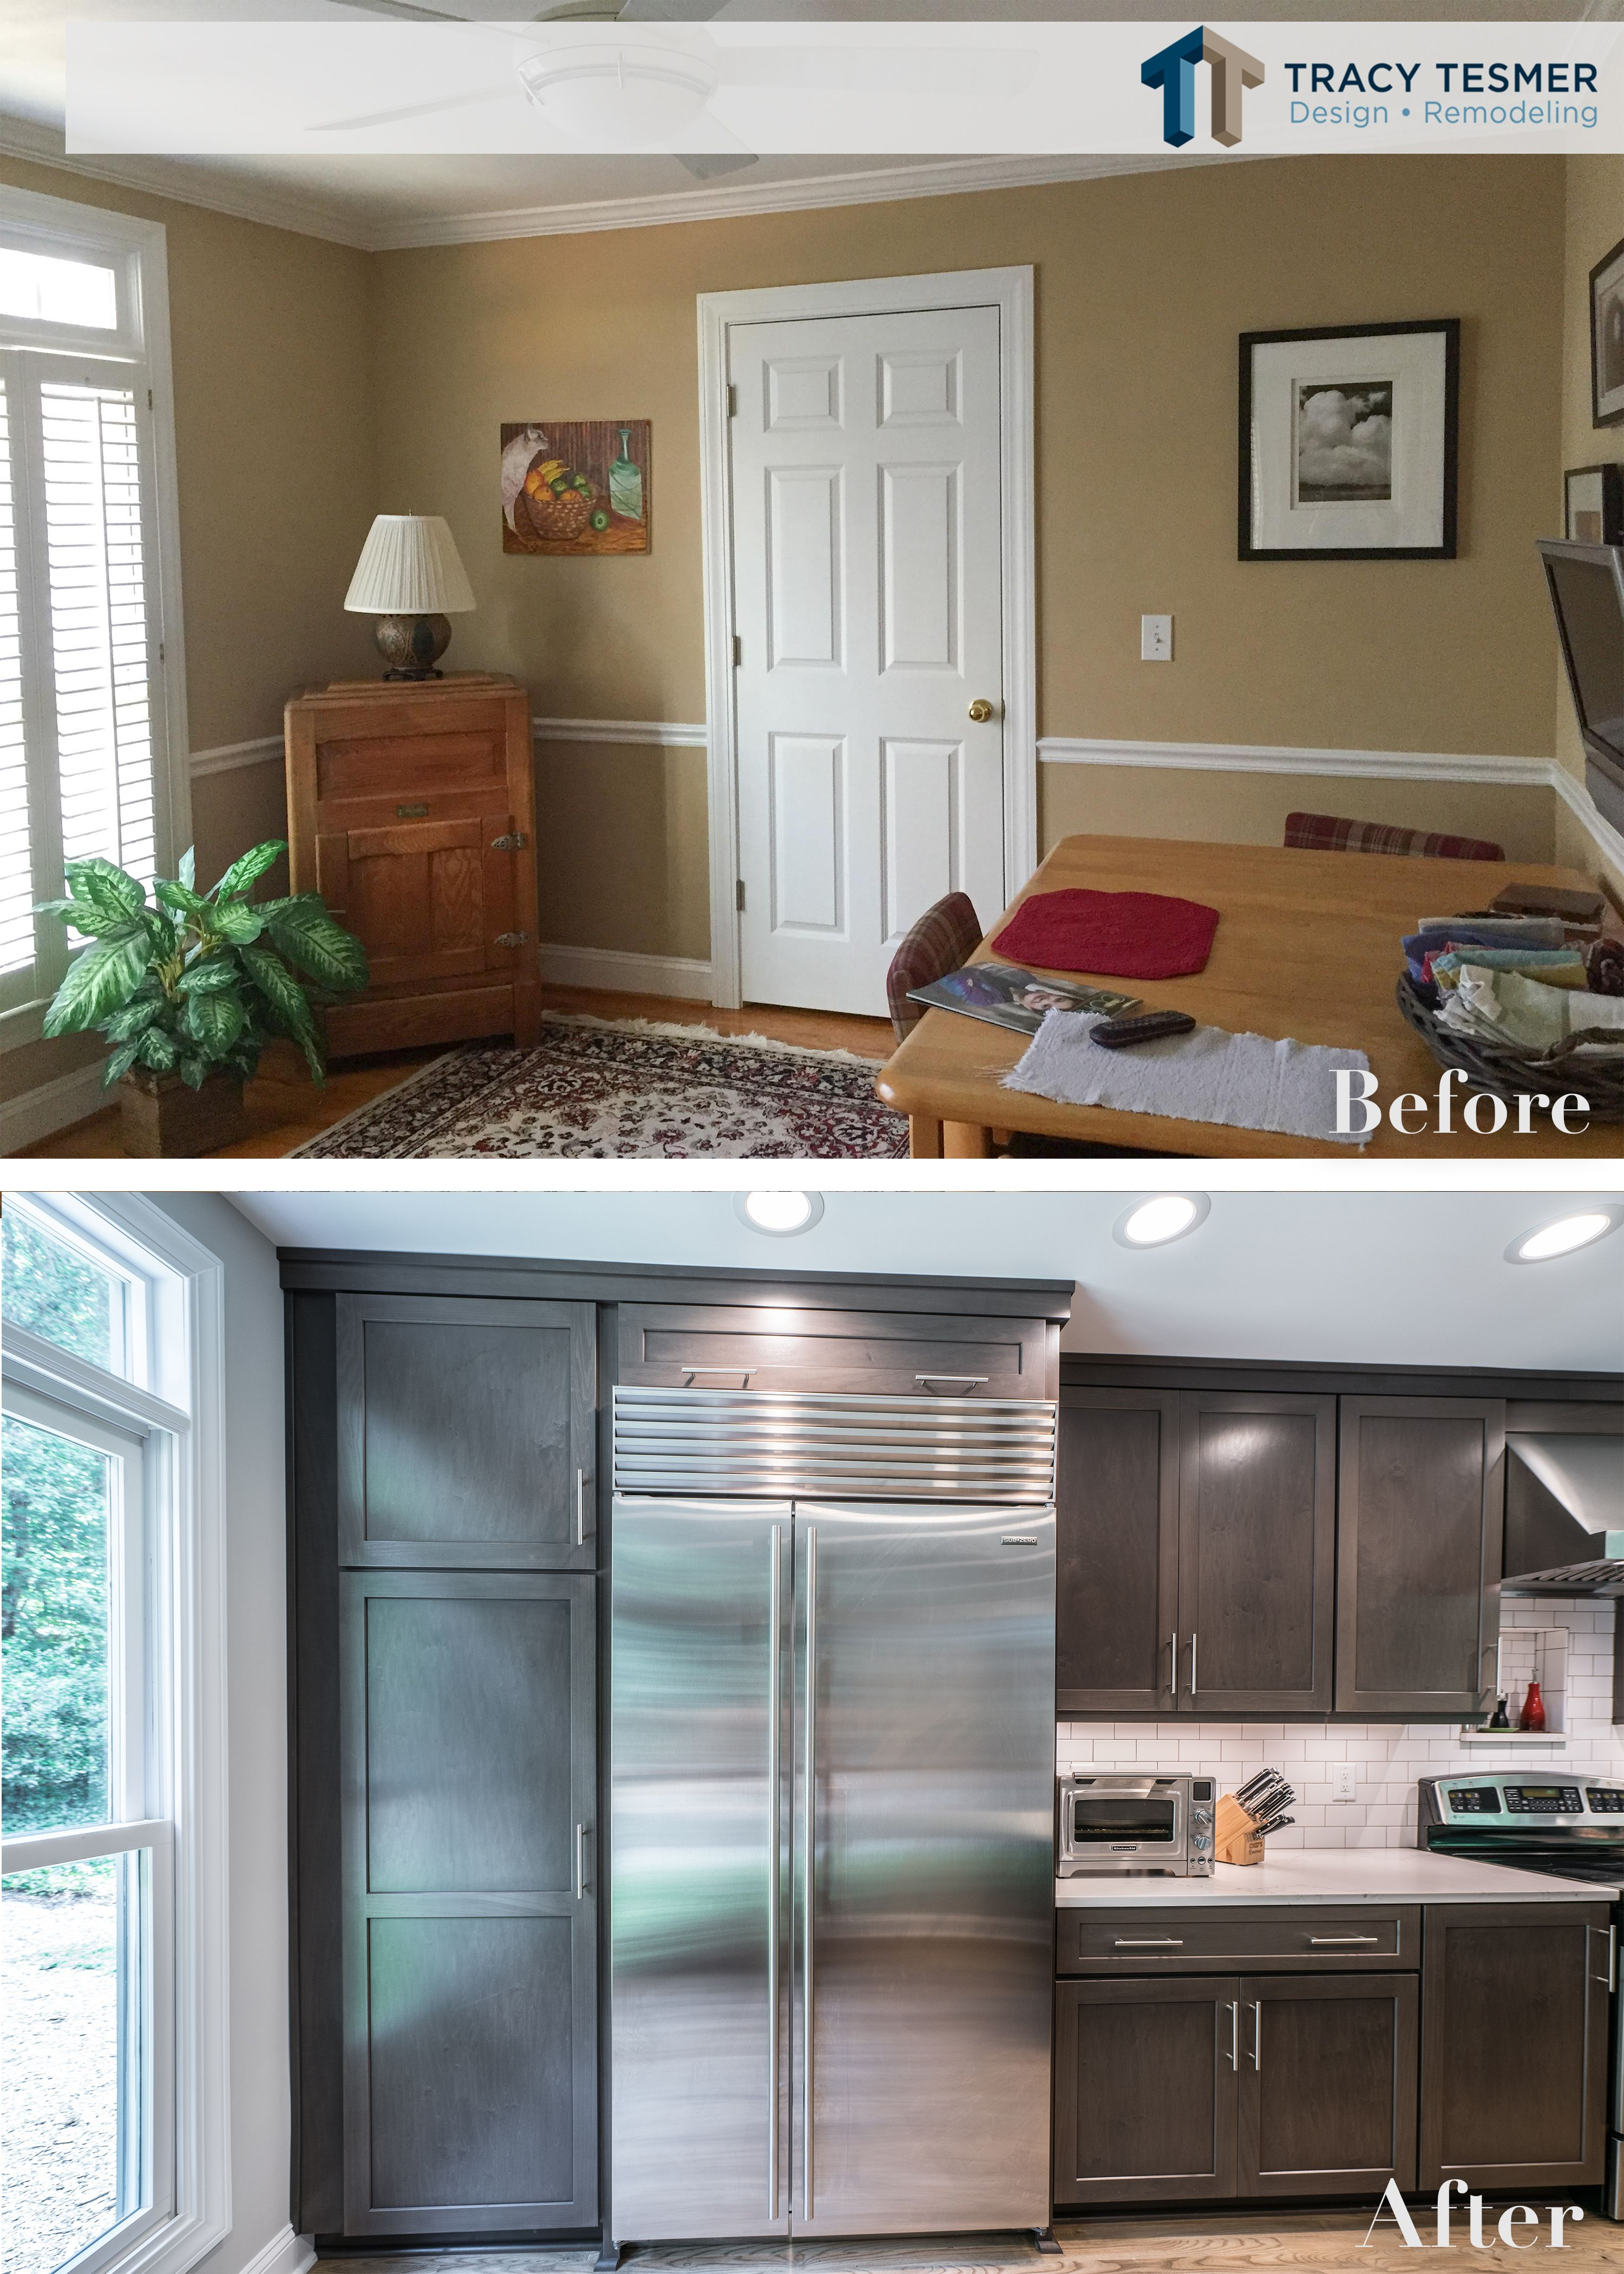 Kitchen Before And After Kitchen Remodel Cost Kitchen Remodel Kitchen Styling